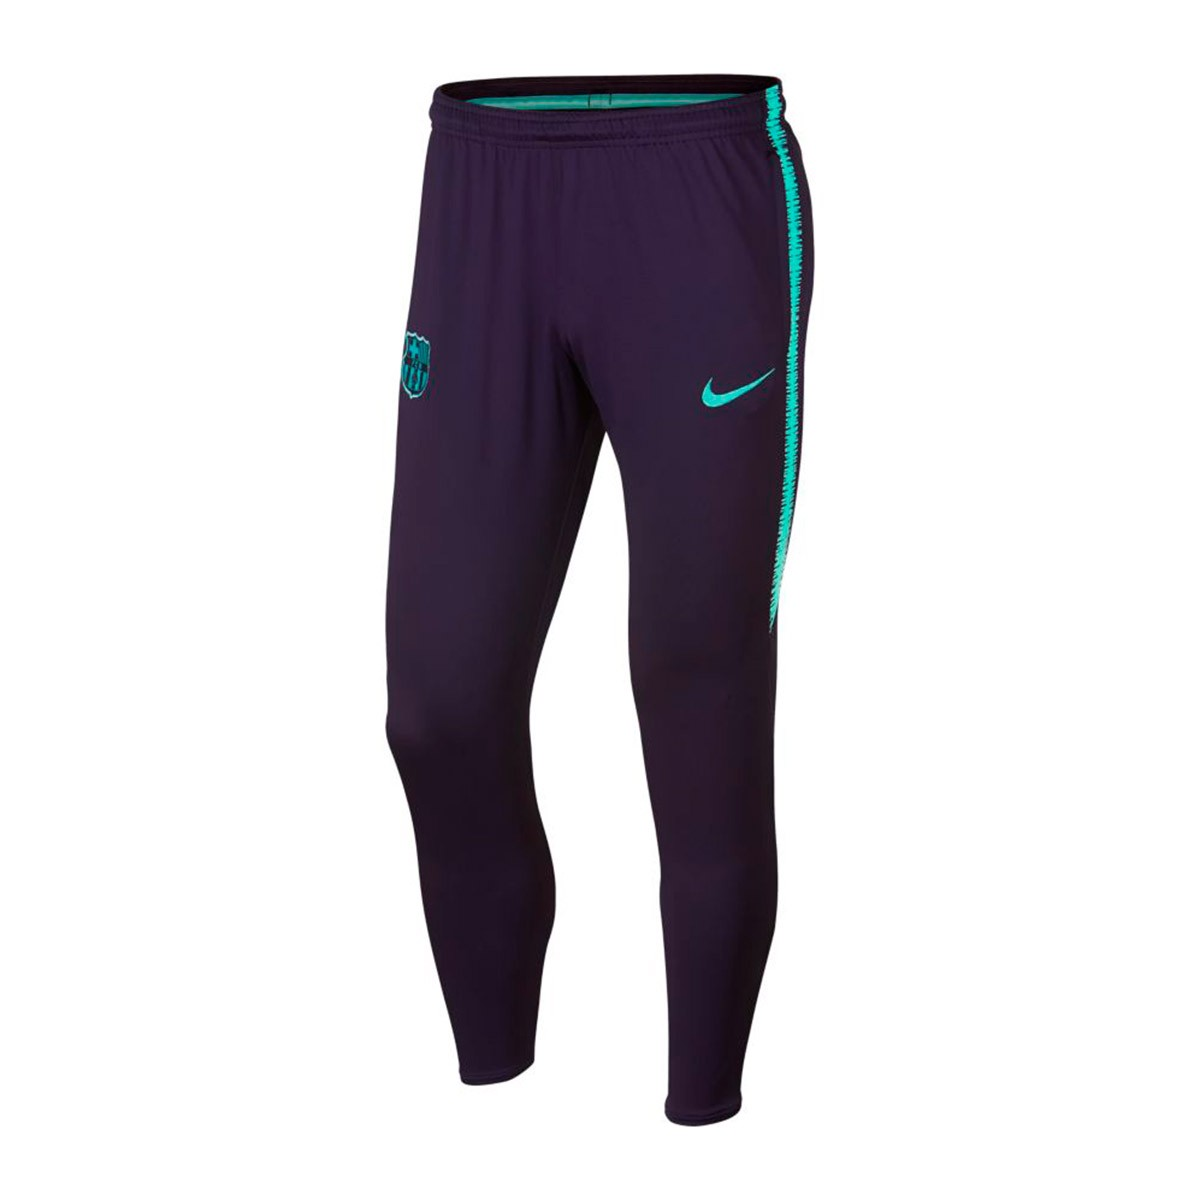 4fd5ad63d66 Tracksuit bottoms Nike FC Barcelona Dry Squad 2018-2019 Purple  dynasty-Hyper turquoise - Leaked soccer